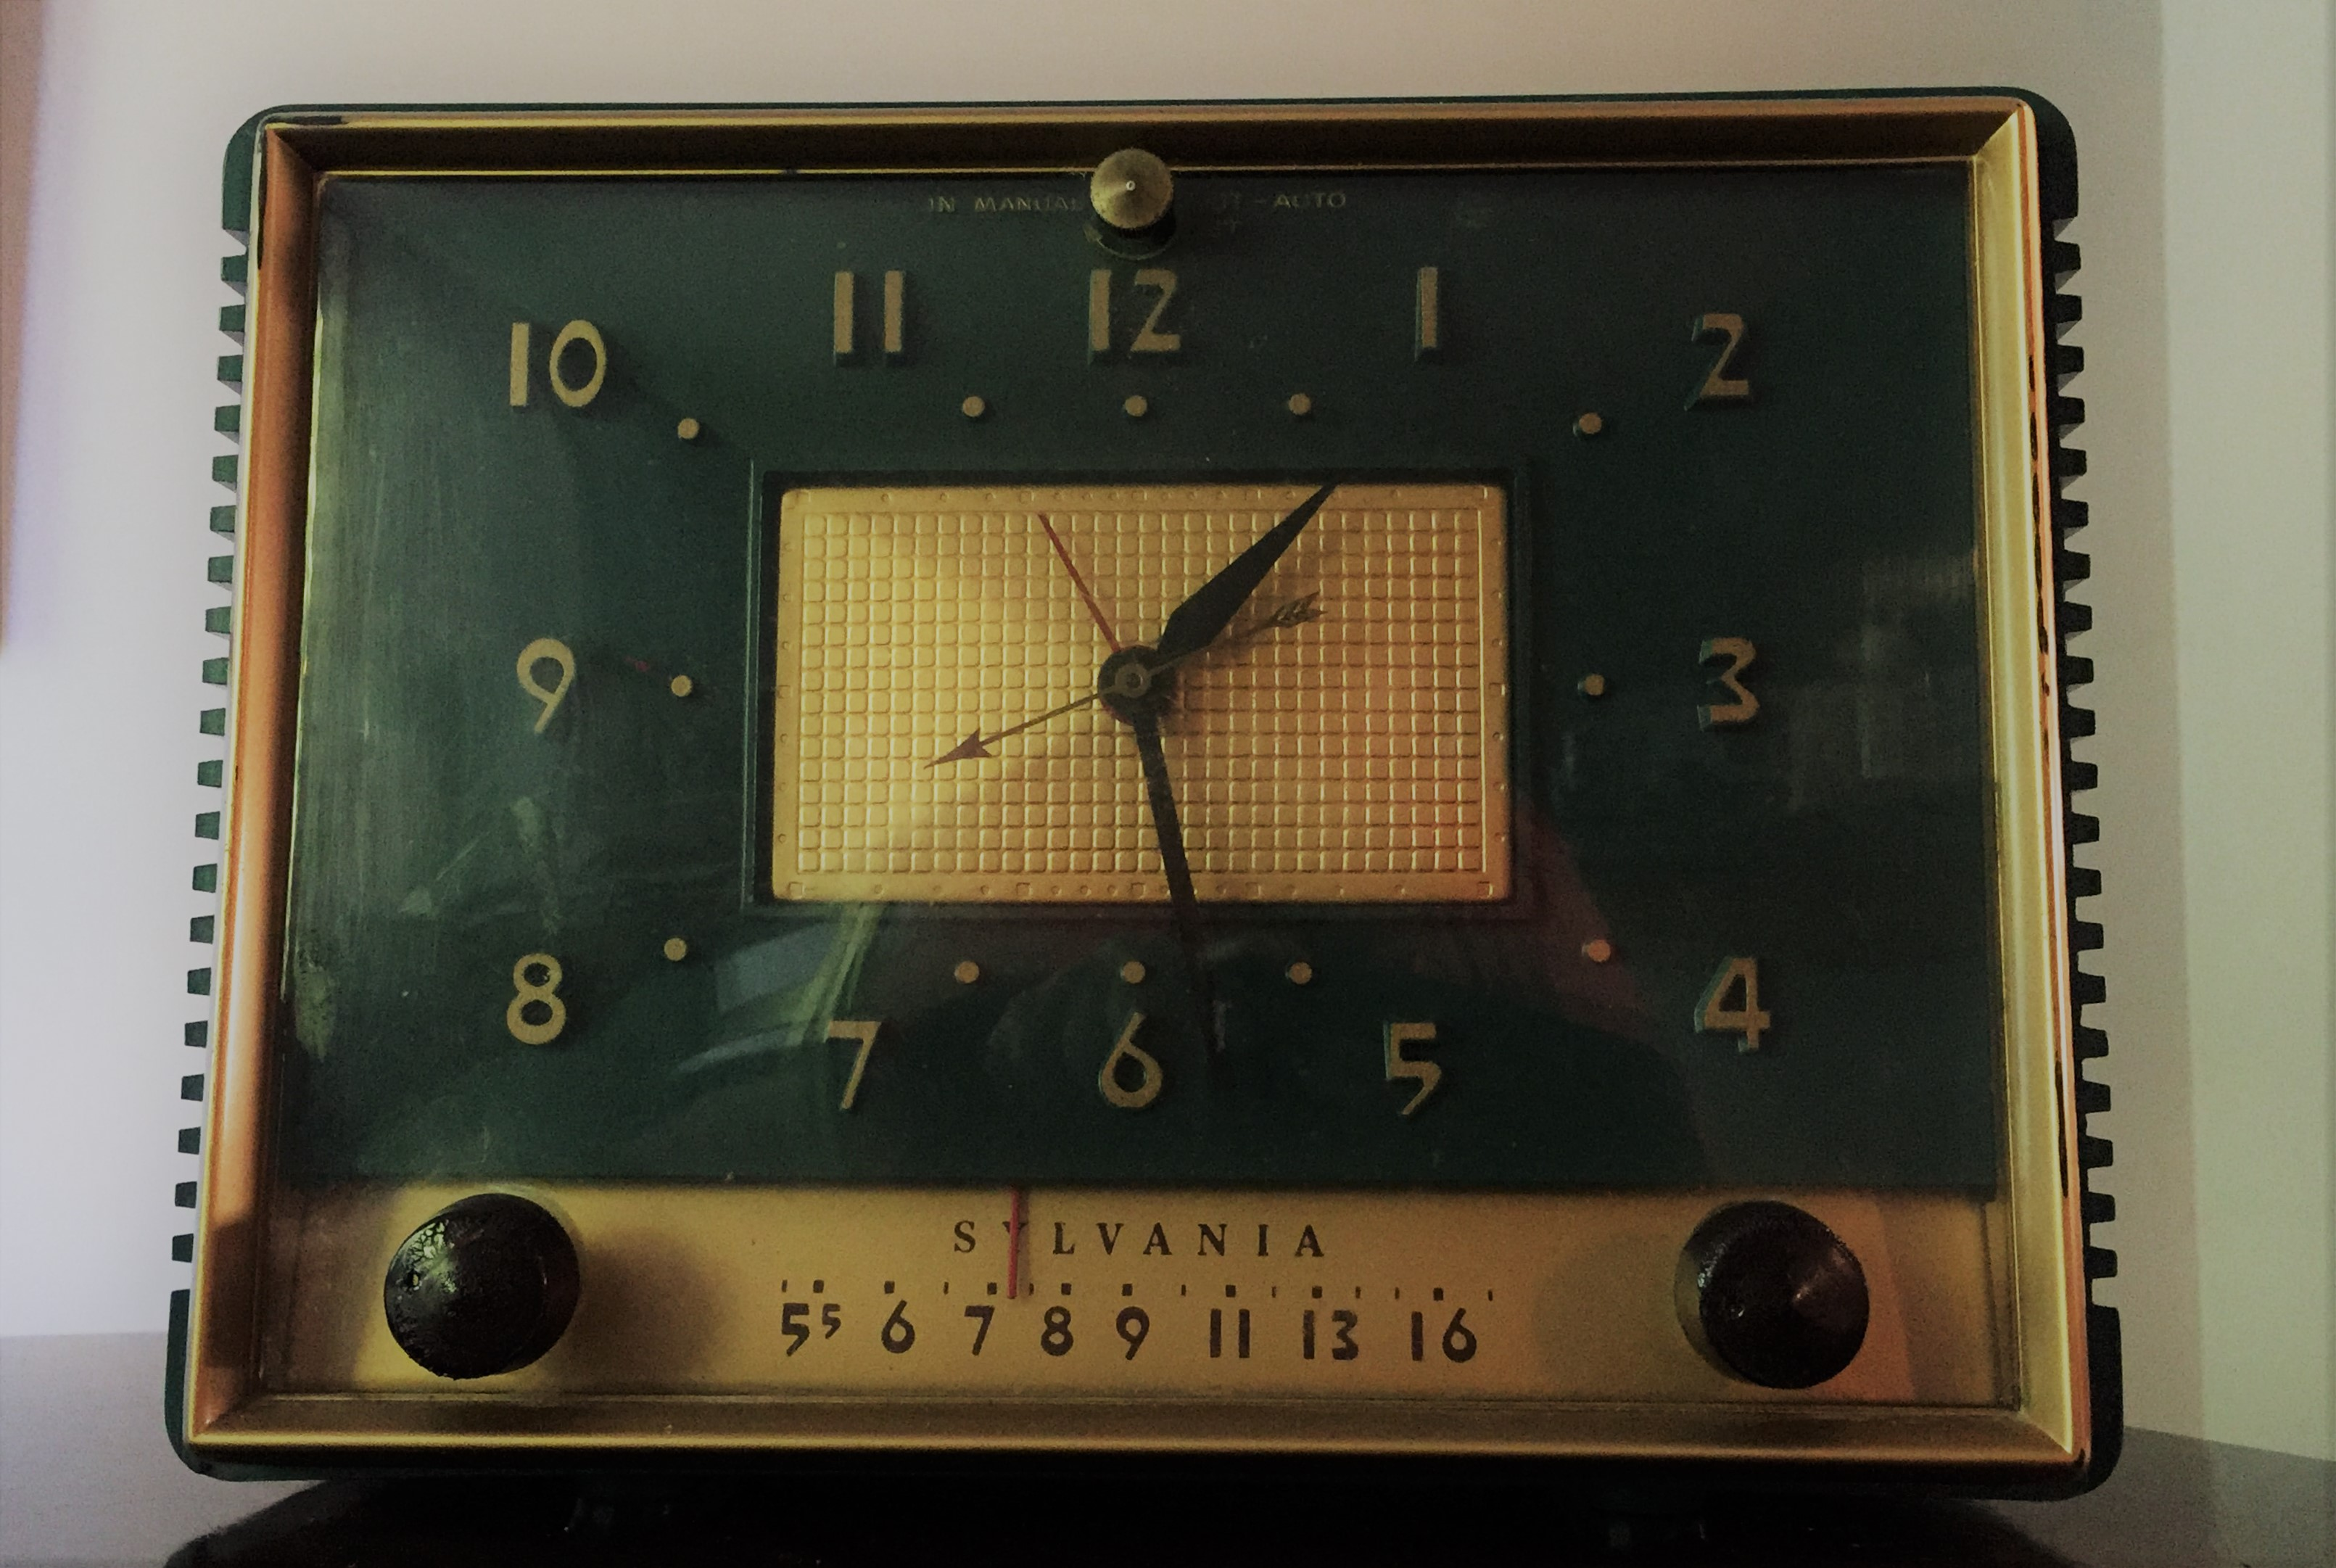 Sylvania AM clock radio, model 542GR, circa 1952.  That's the year KANU FM 91.5 (Kansas Public Radio) first signed on the air. Unfortunately, this AM radio could not tune in KANU.  (Photo by J. Schafer)